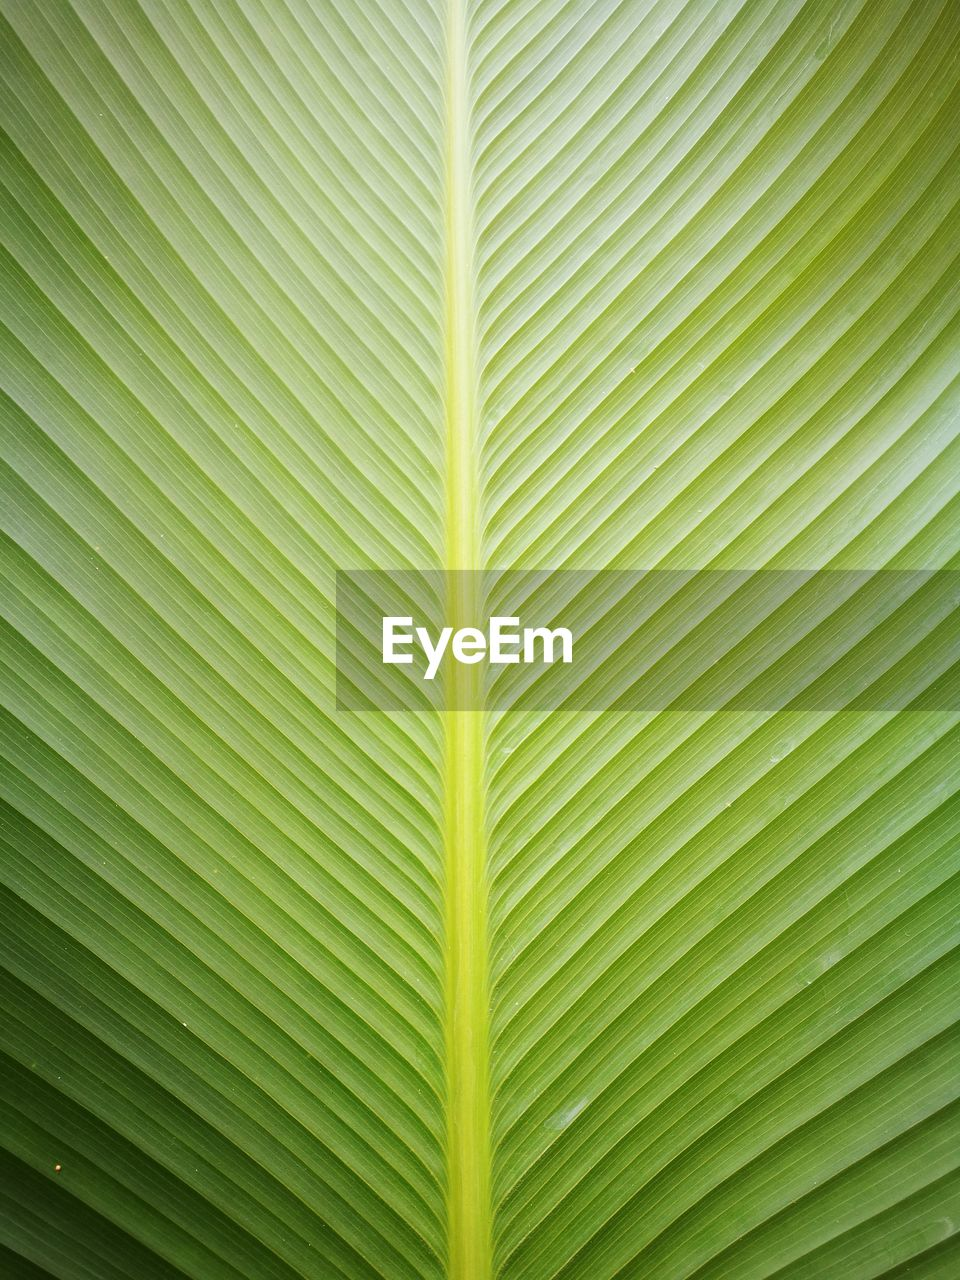 leaf, plant part, green color, backgrounds, palm leaf, pattern, plant, no people, full frame, close-up, palm tree, nature, natural pattern, tropical climate, textured, tree, growth, beauty in nature, leaf vein, frond, outdoors, leaves, abstract, abstract backgrounds, textured effect, natural condition